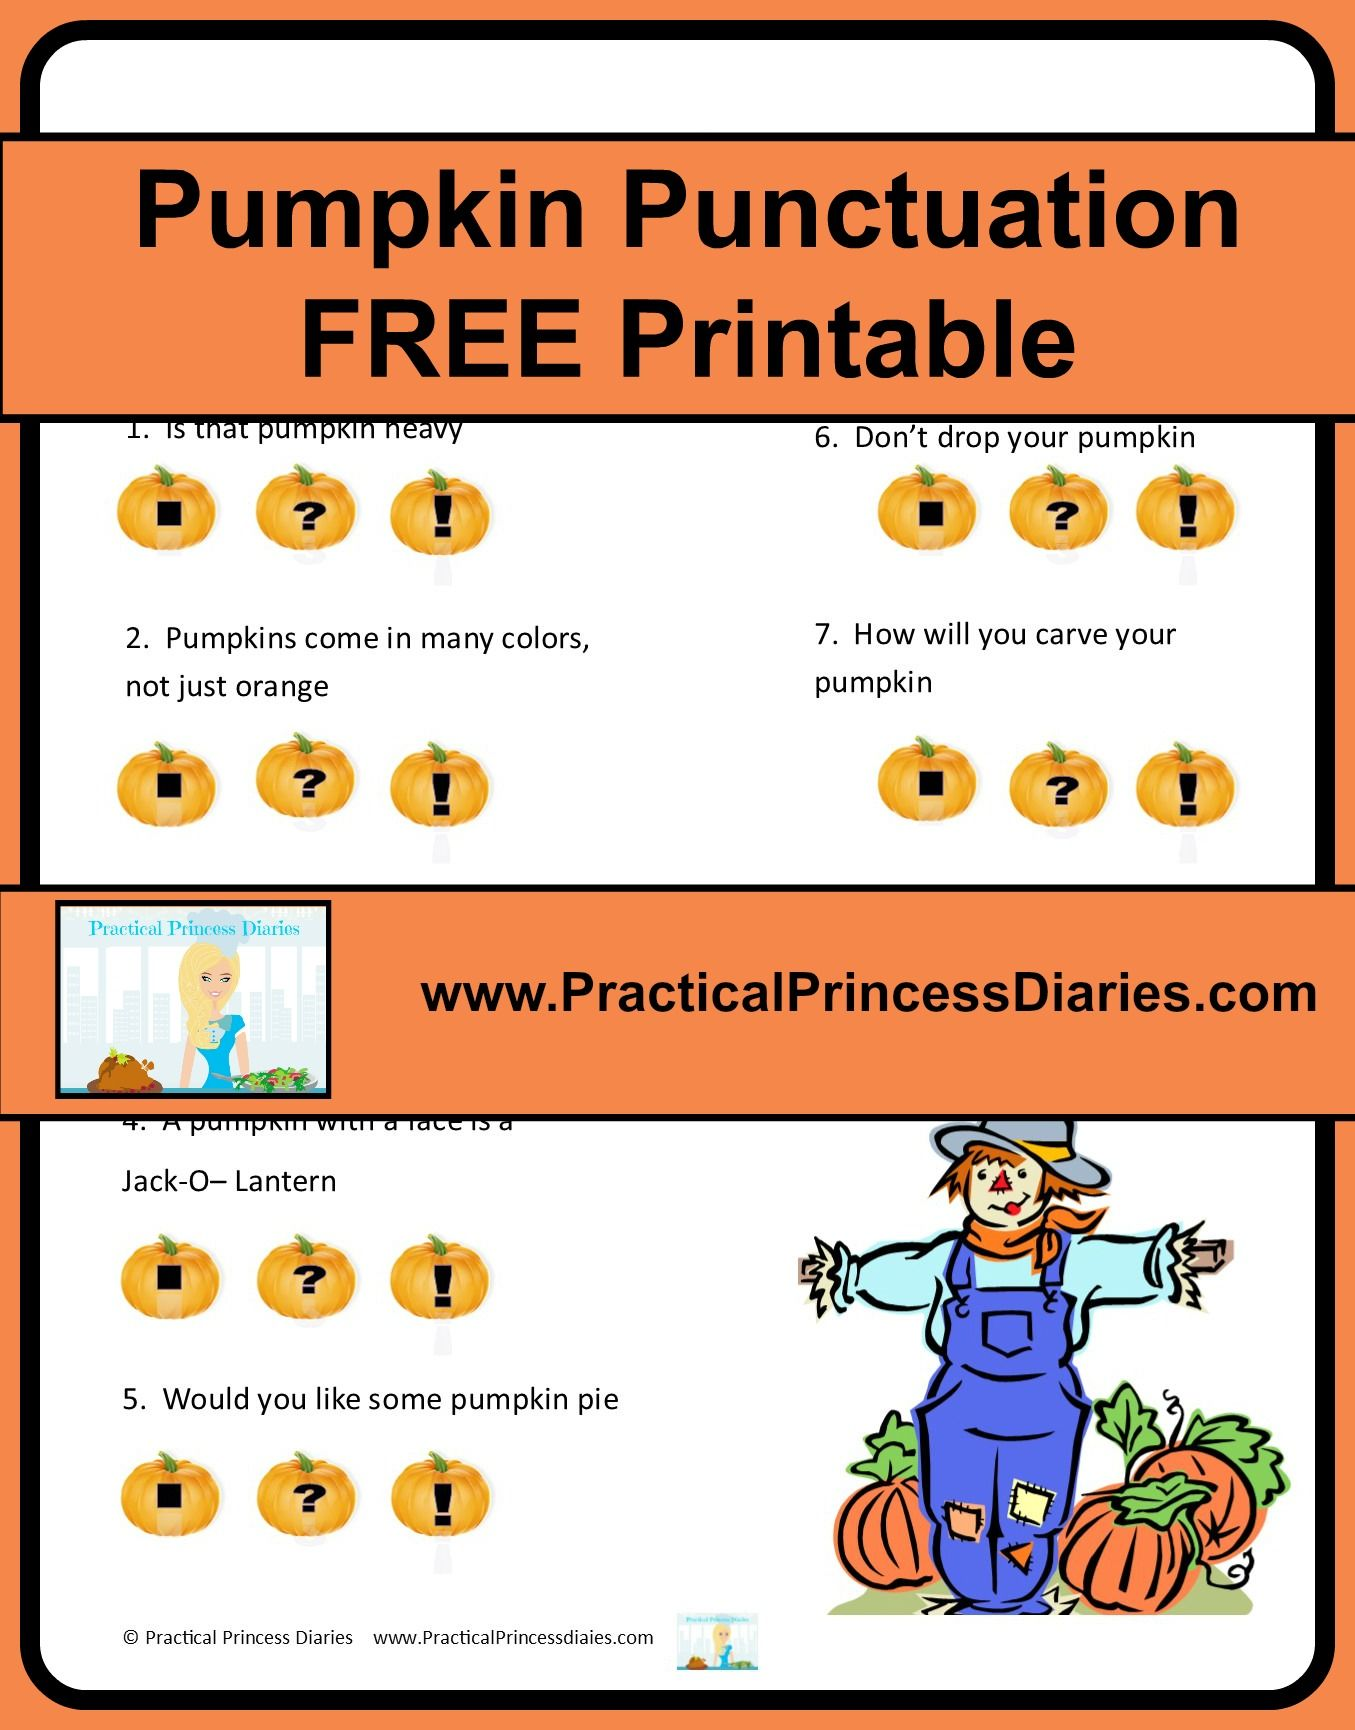 Practical Princess Diaries Pumpkin Punctuation Free